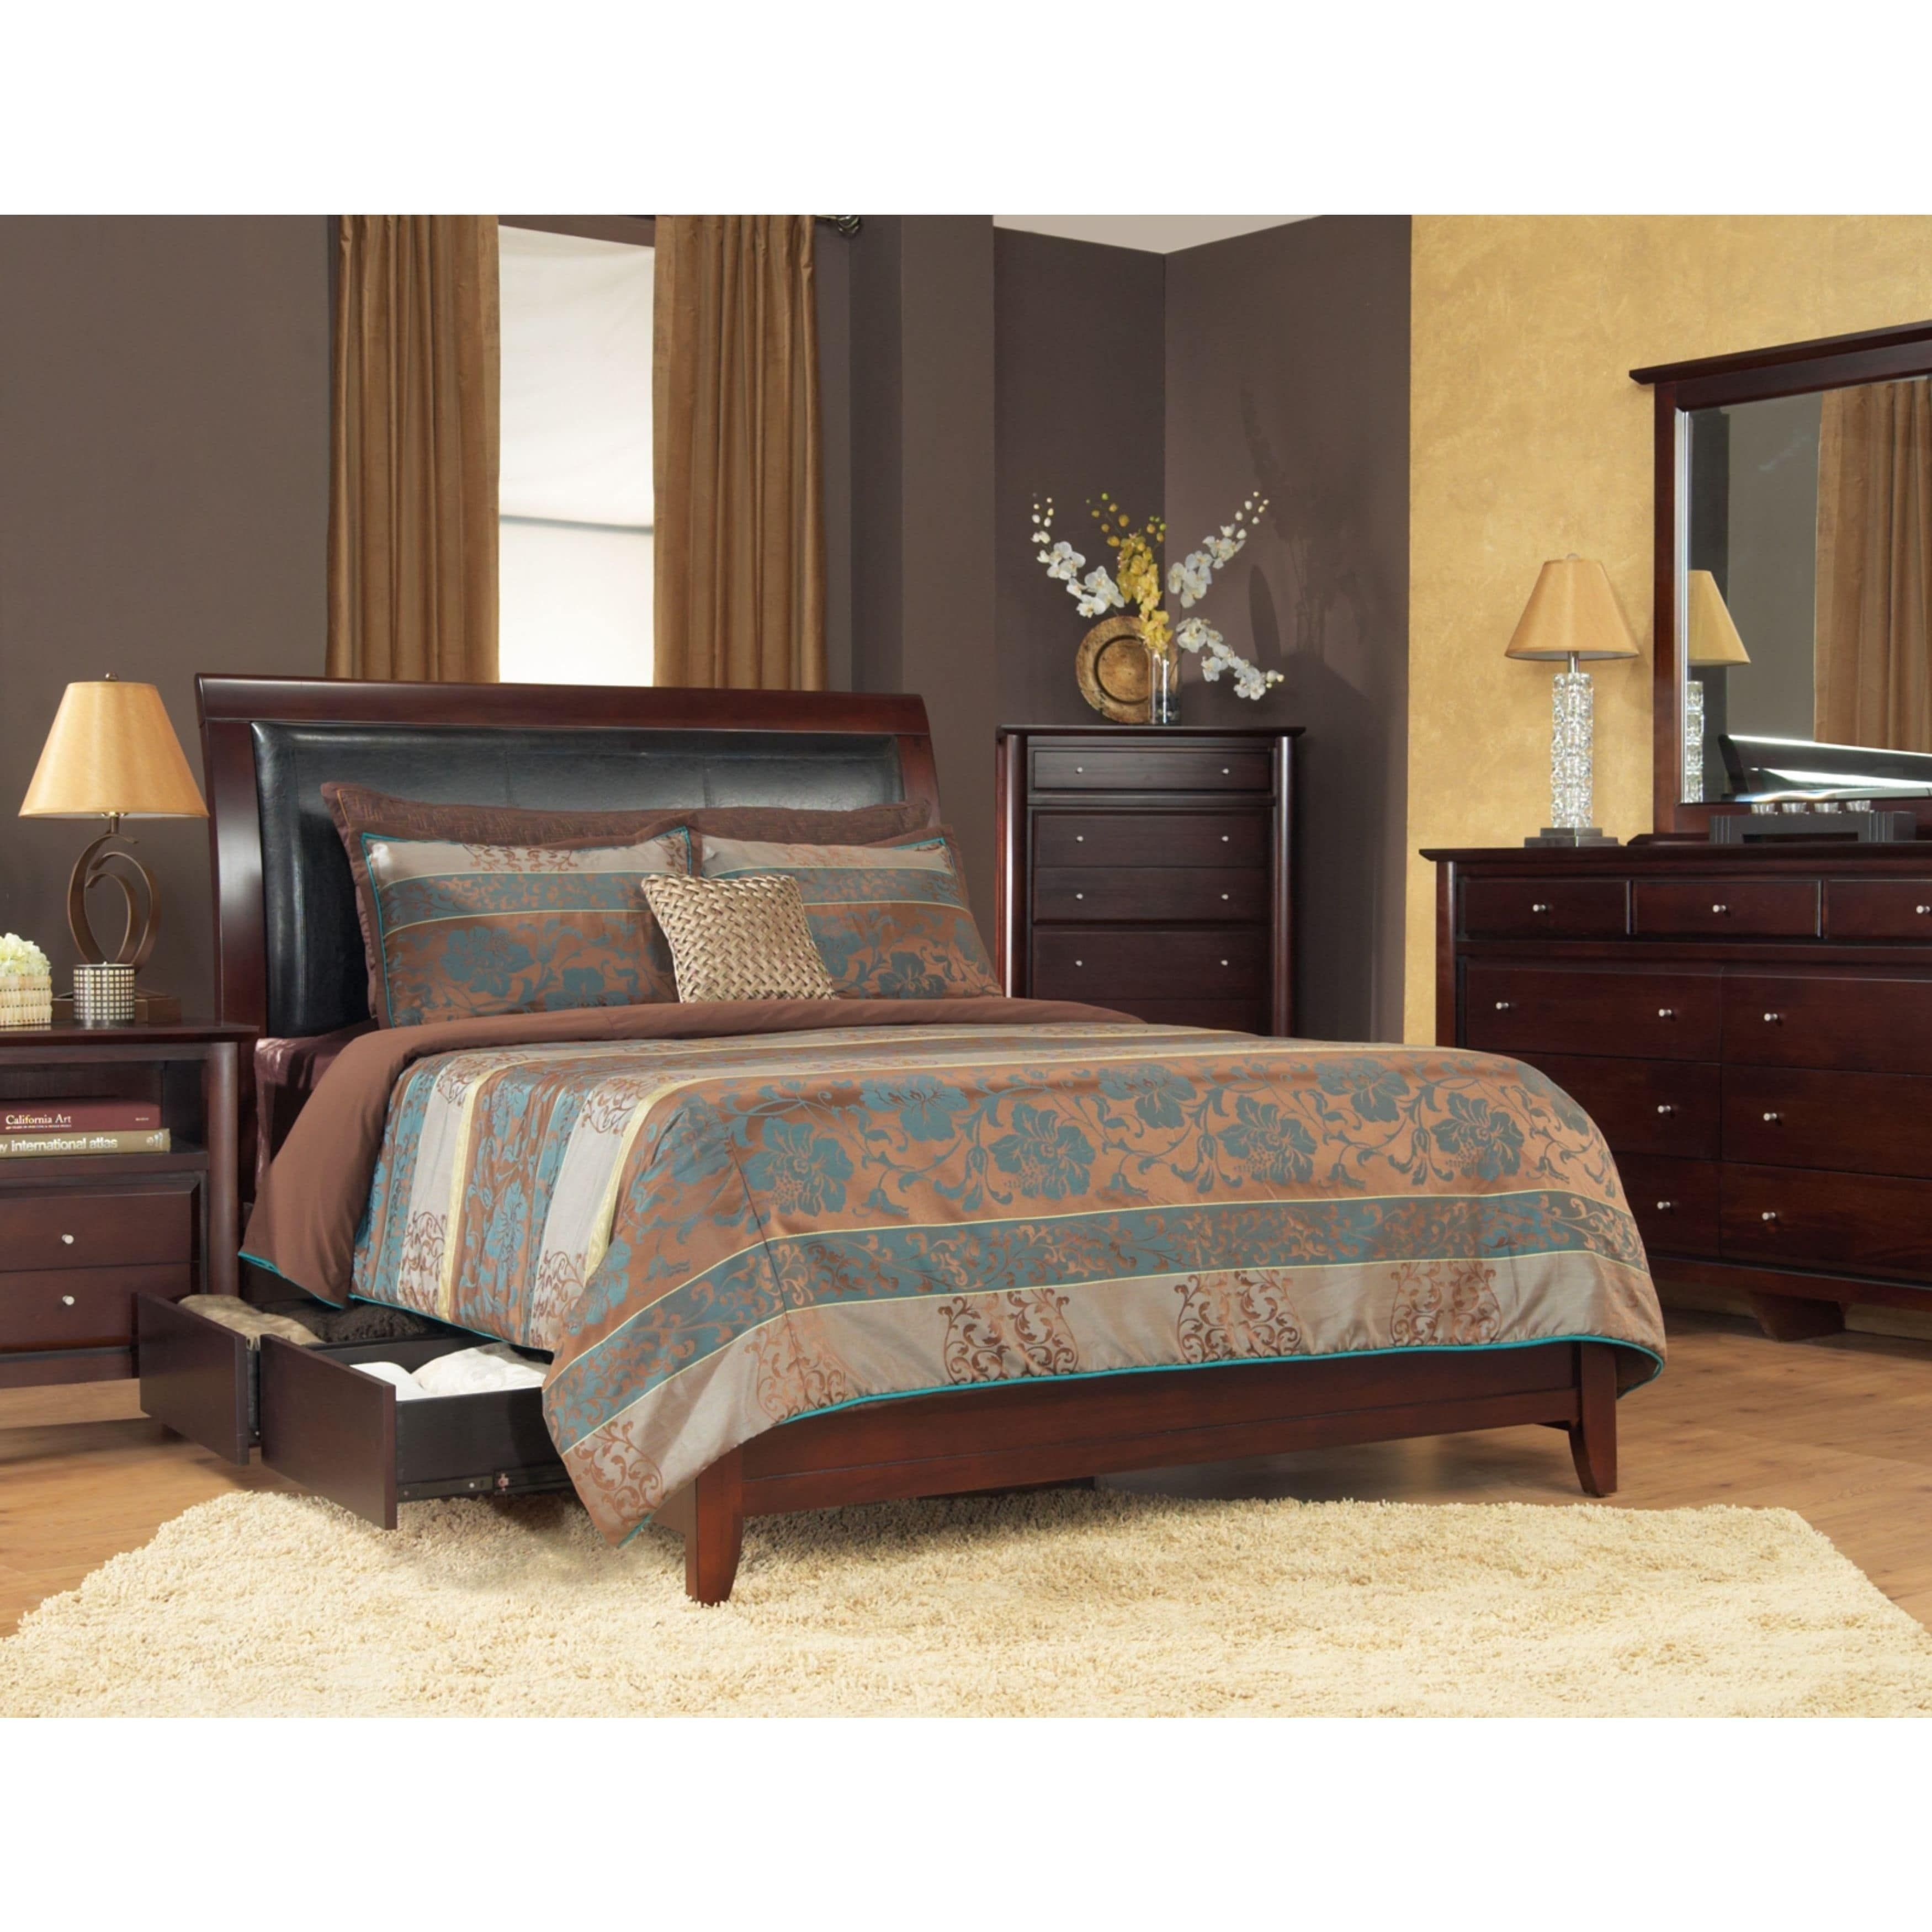 Domusindo padded synthetic leather storage bed in coco full brown